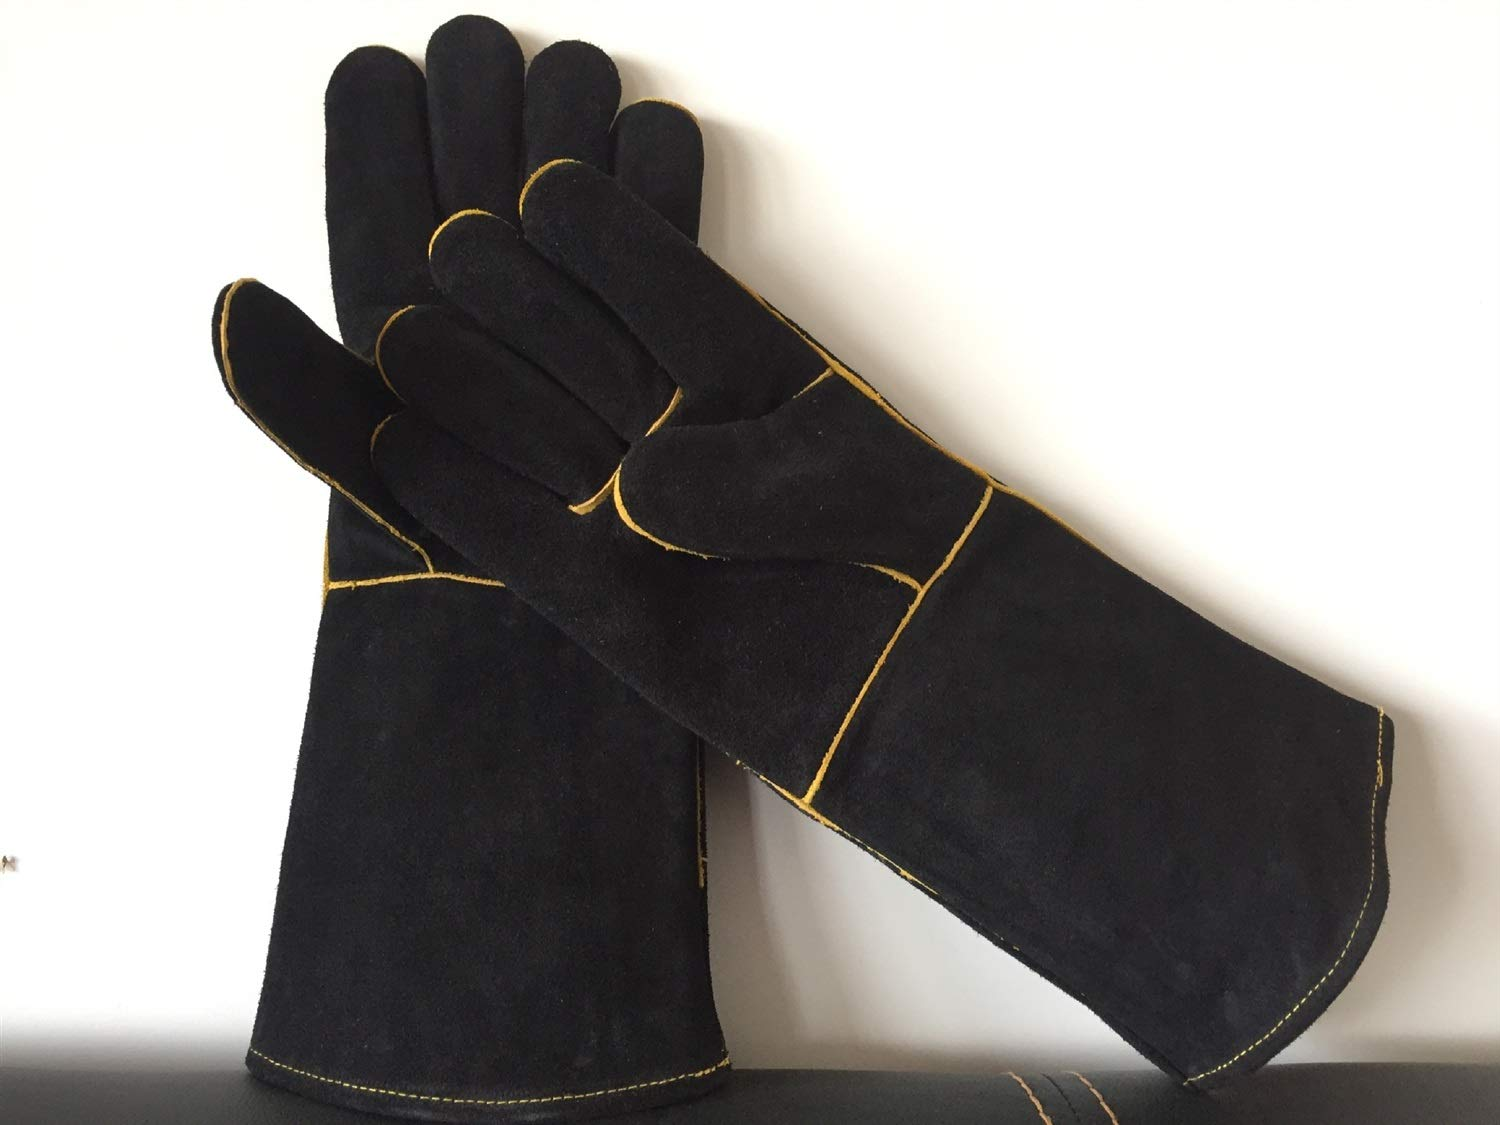 Extreme Heat & Fire Resistant Gloves Leather Perfect for Fireplace, Stove, Oven Mitt, Grill Pit, Welding, Furnace,BBQ,Mig, Pot Holder,Black,16 Inch Home & Kitchen (Color : Black, Size : L-One Pair) by YAOSHIBIAN-Oven Mitts (Image #5)